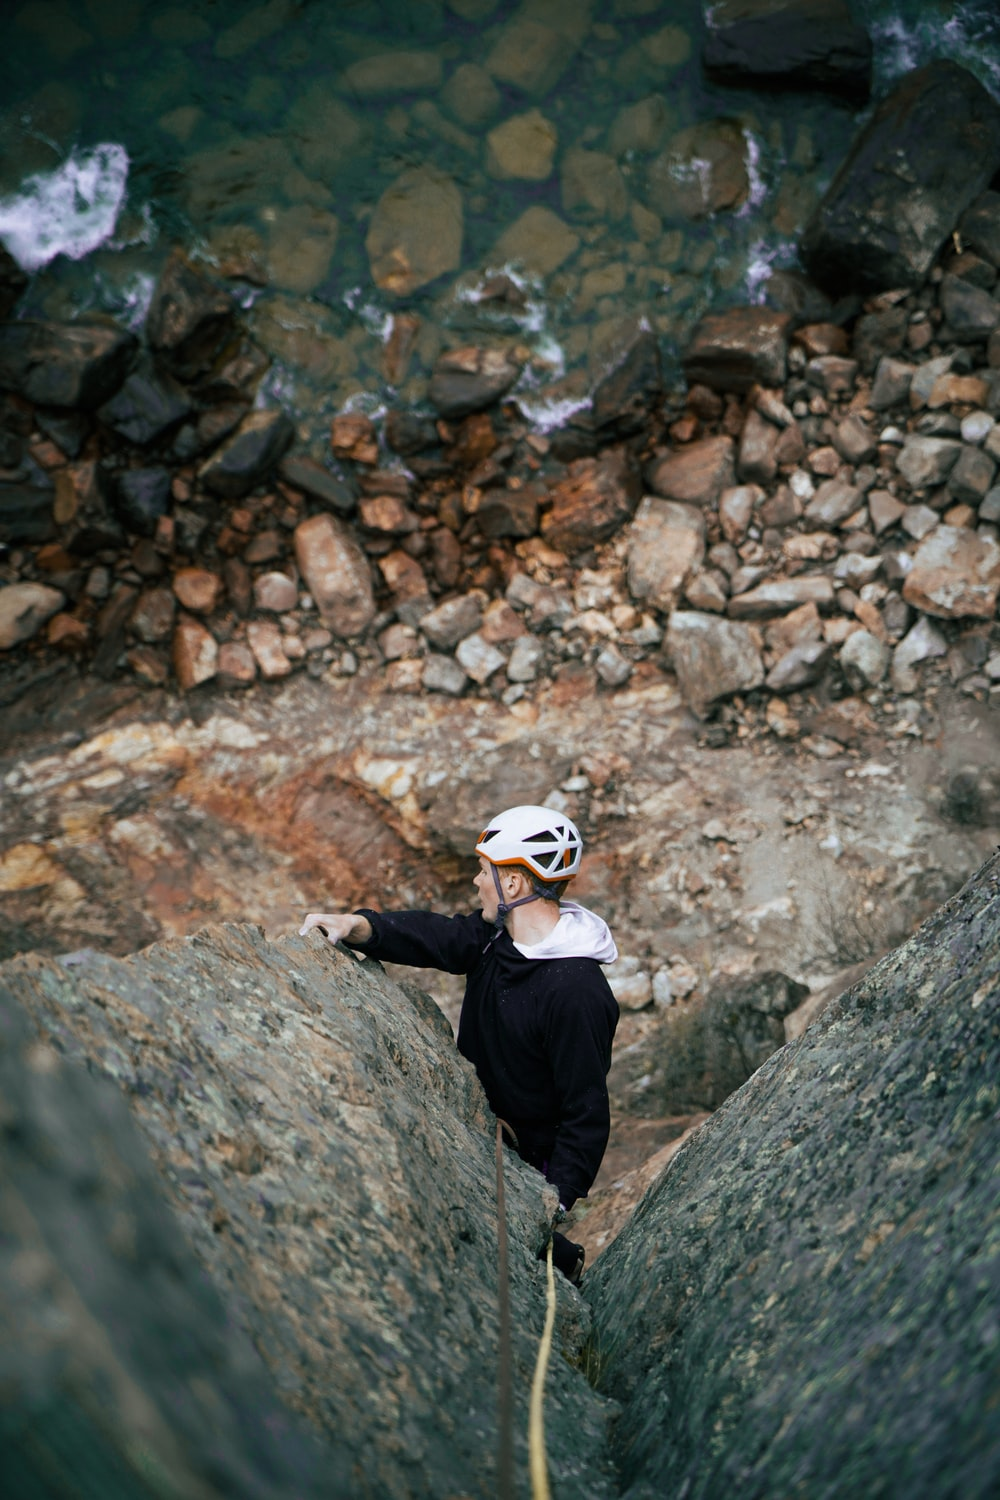 man in black jacket and white cap standing on rocky ground